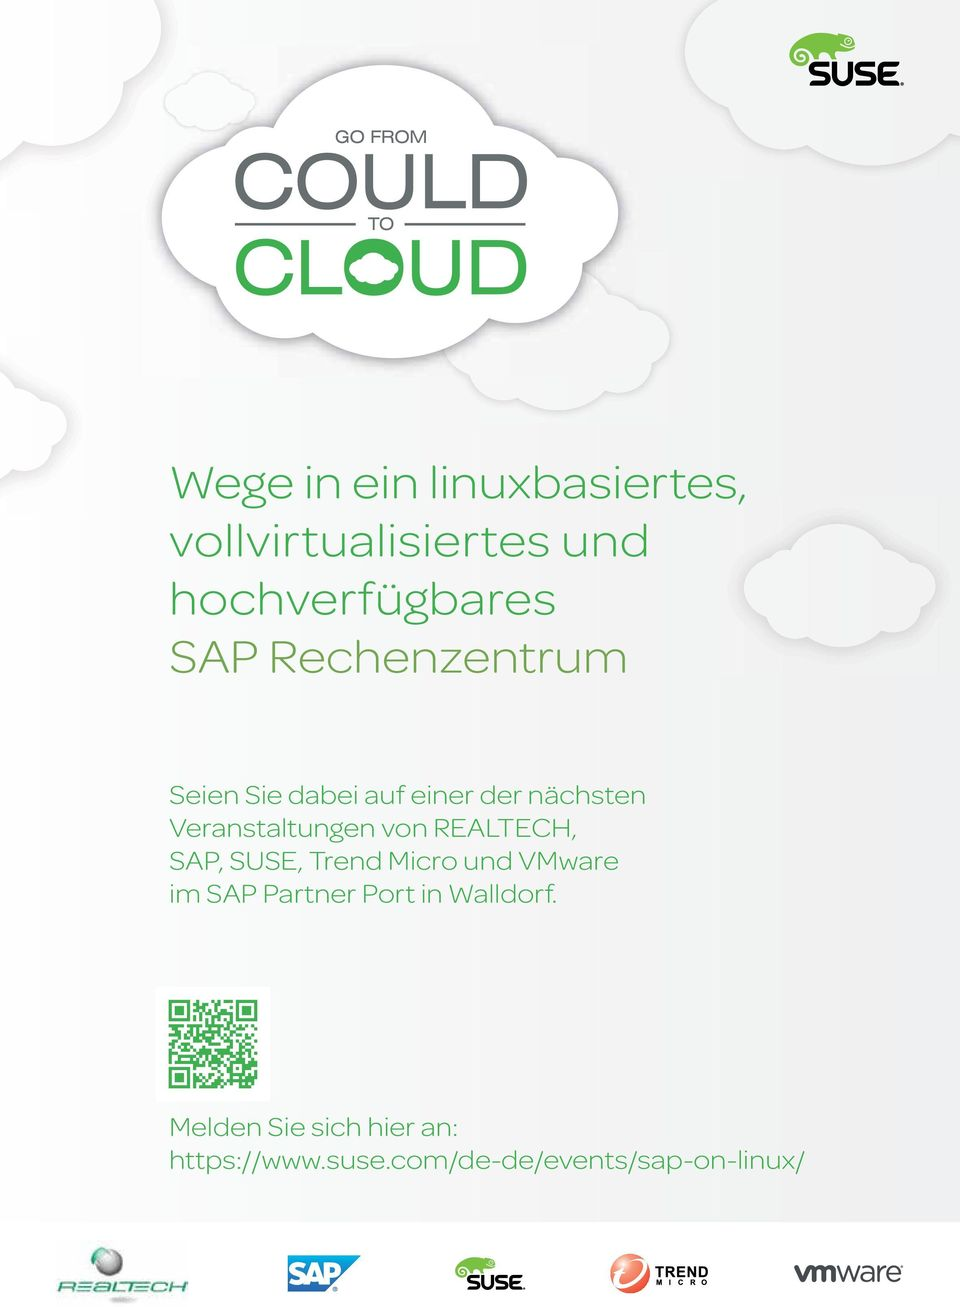 REALTECH, SAP, SUSE, Trend Micro und VMware im SAP Partner Port in